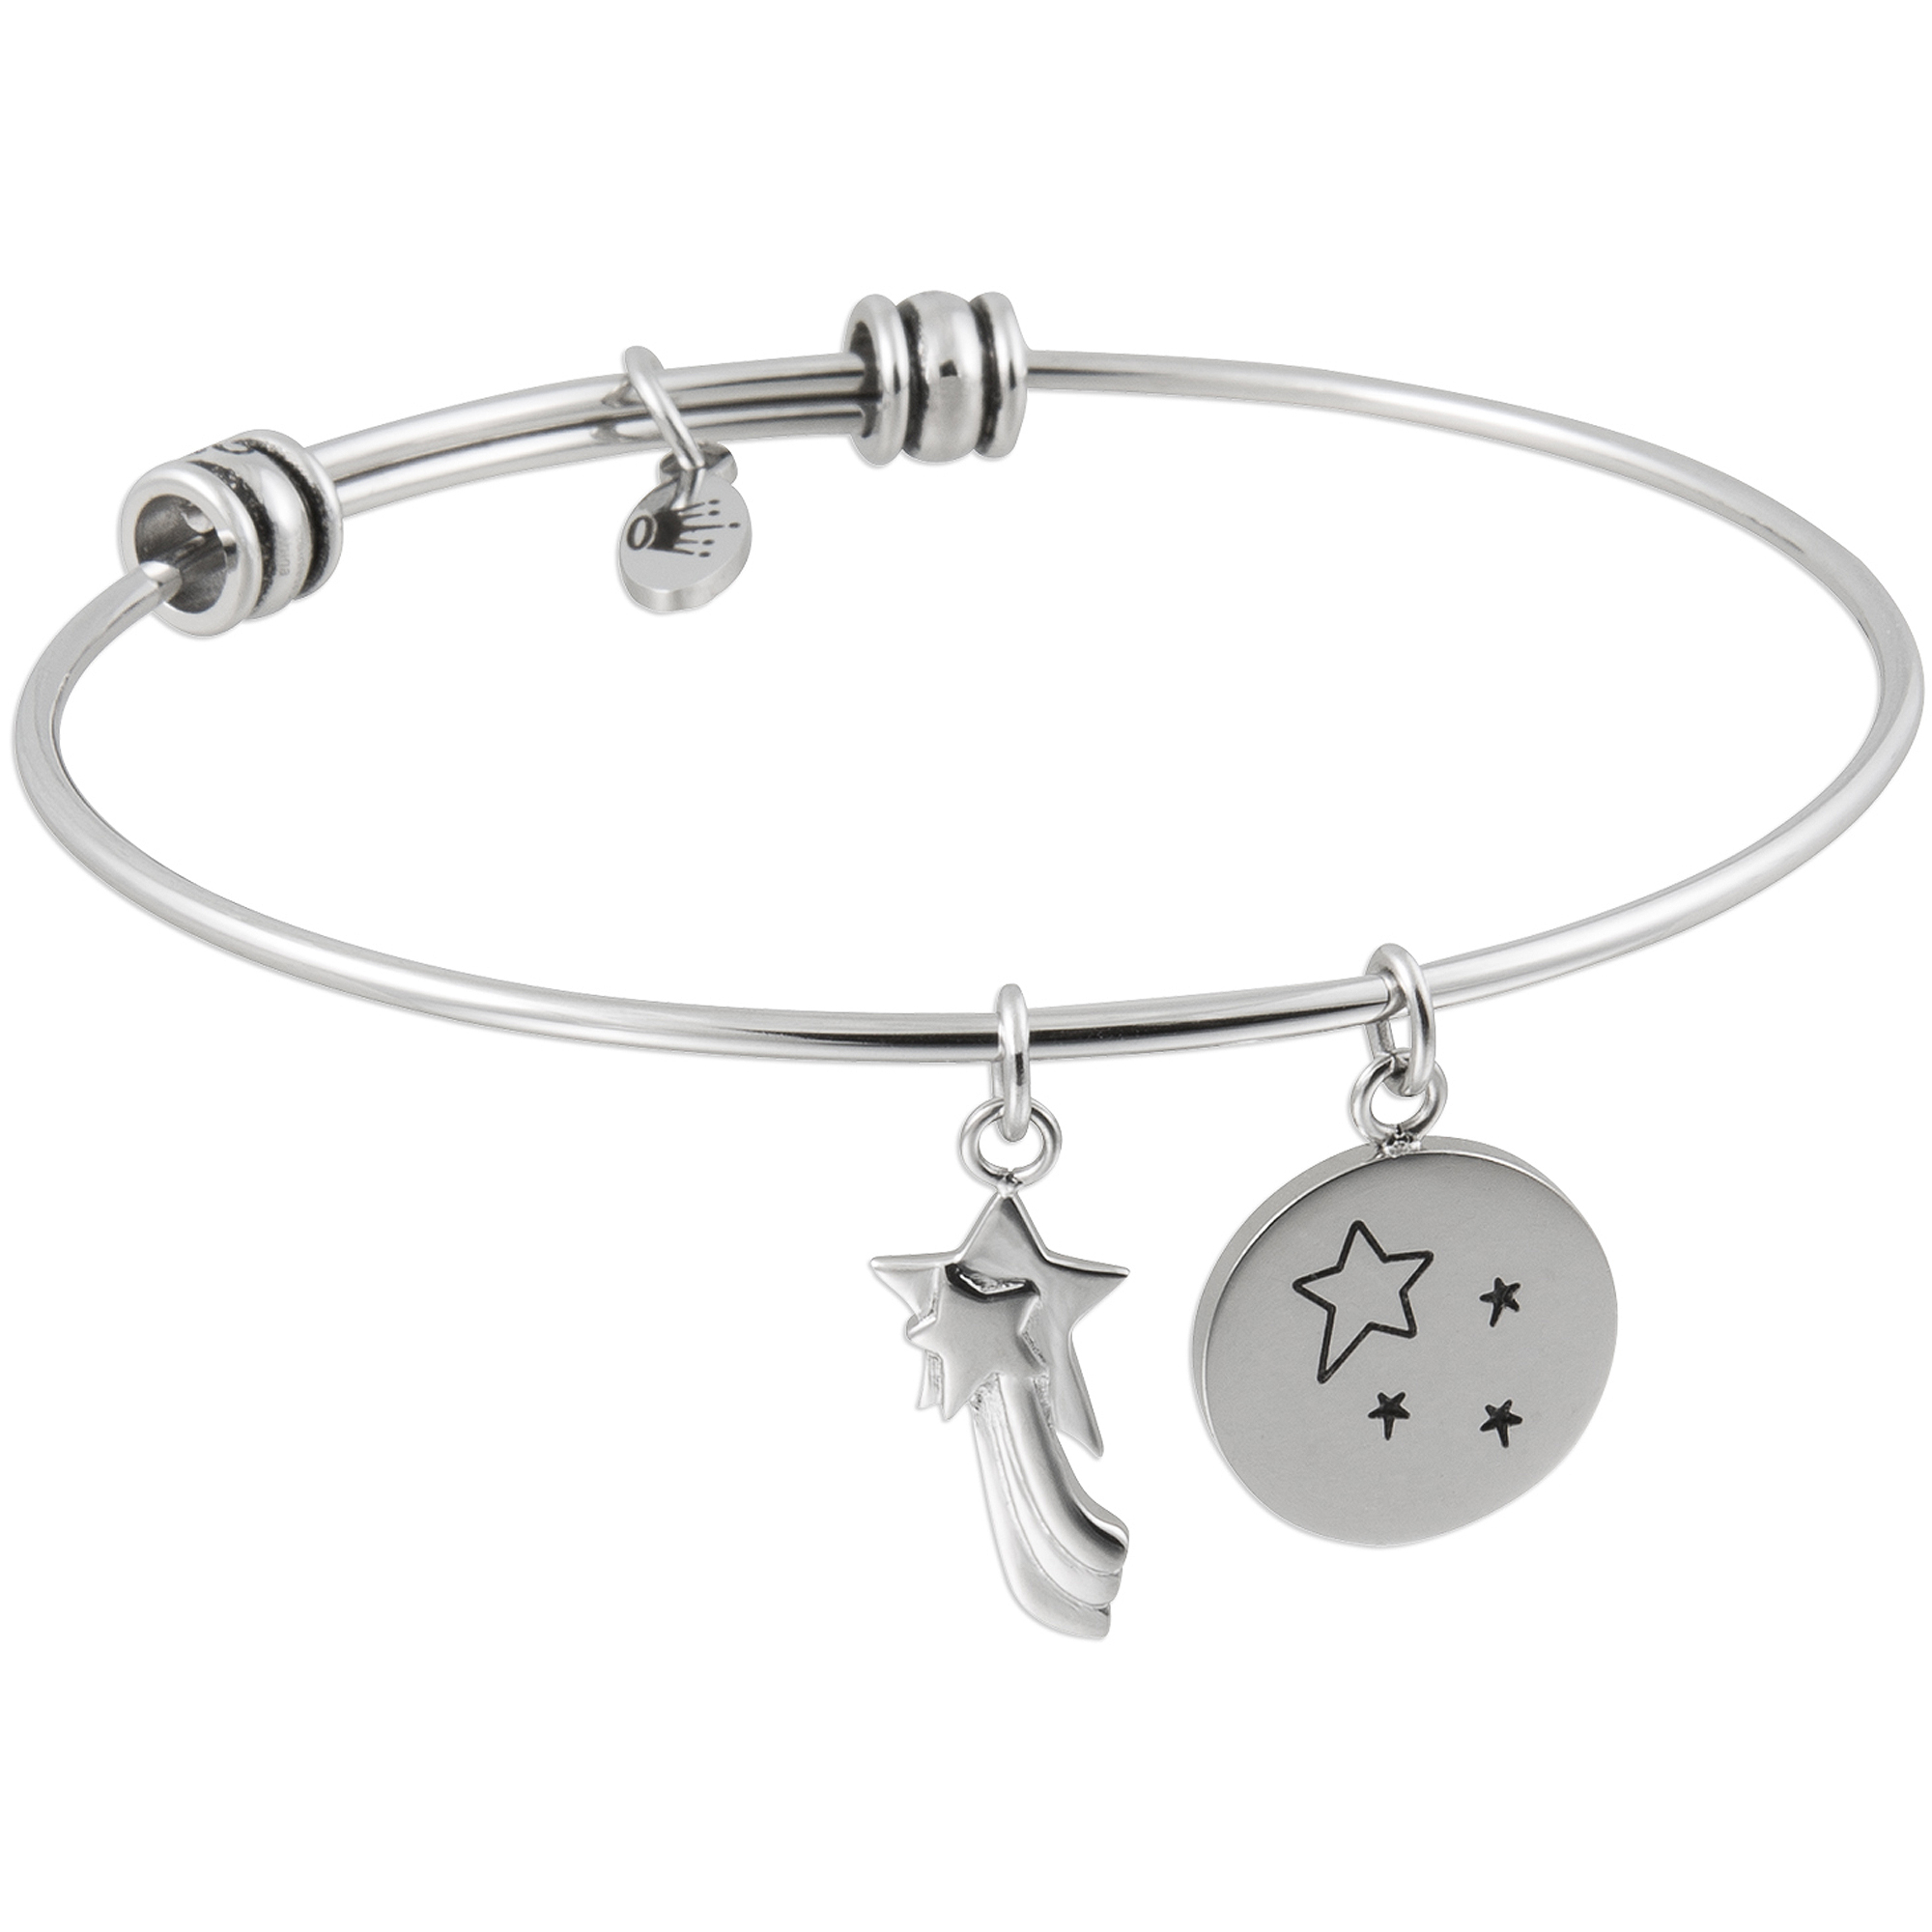 "Connections from Hallmark Stainless Steel ""It all Starts with a Dream"" and Shooting Star Multi-Charm Wire Bangle, 7.75"